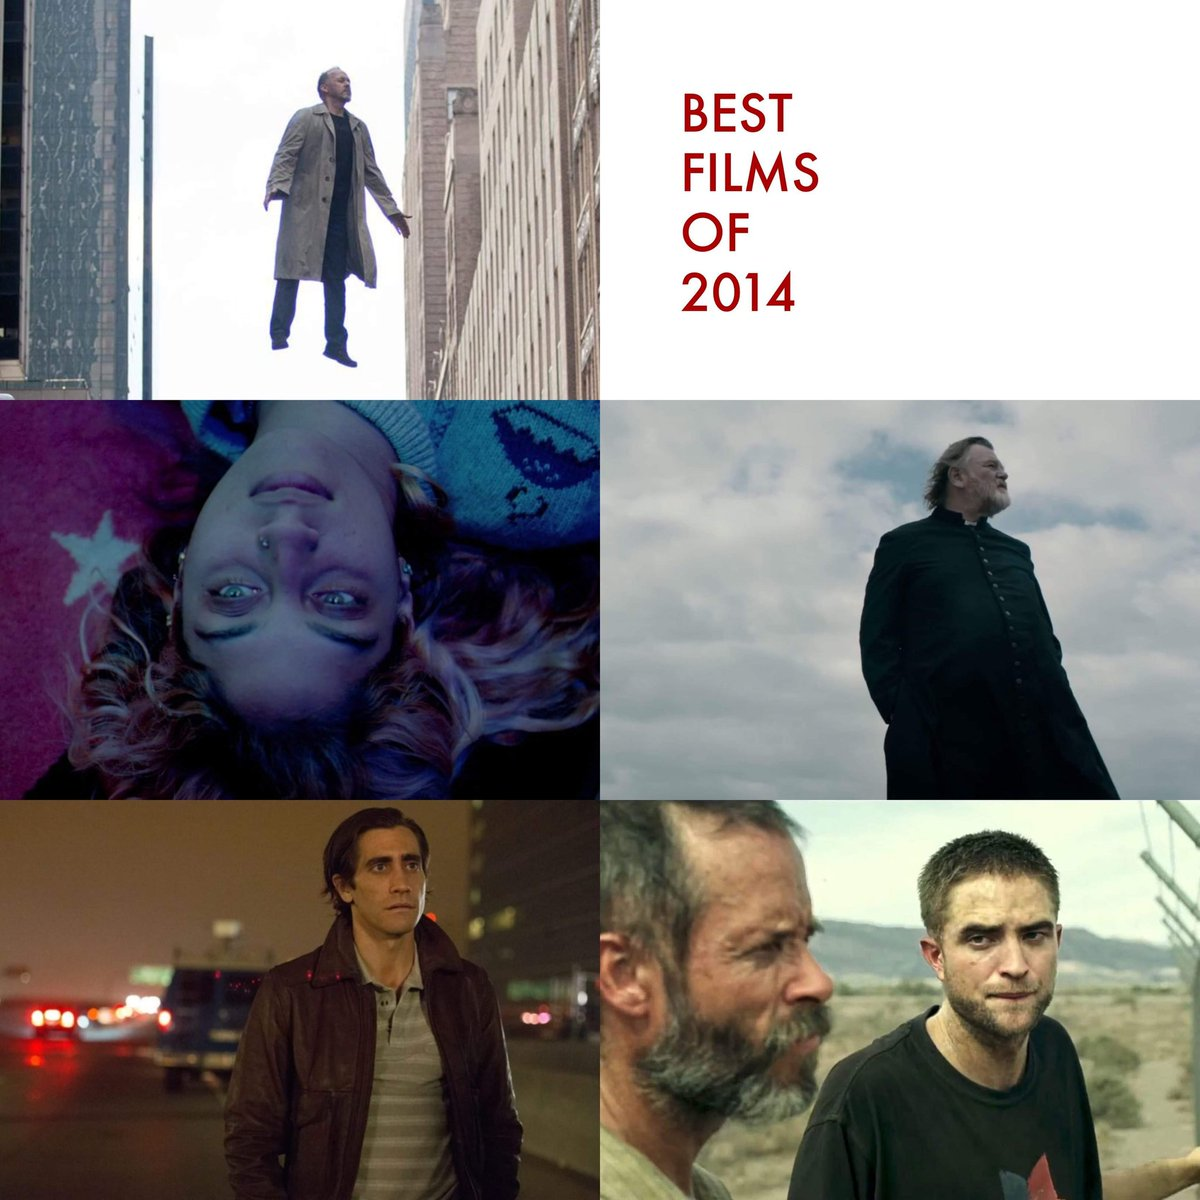 #bestfilmsof2014 #thedonttellshow #birdman #catchmedaddy #calvary #nightcrawler #therover https://t.co/9VPWmKhhyb